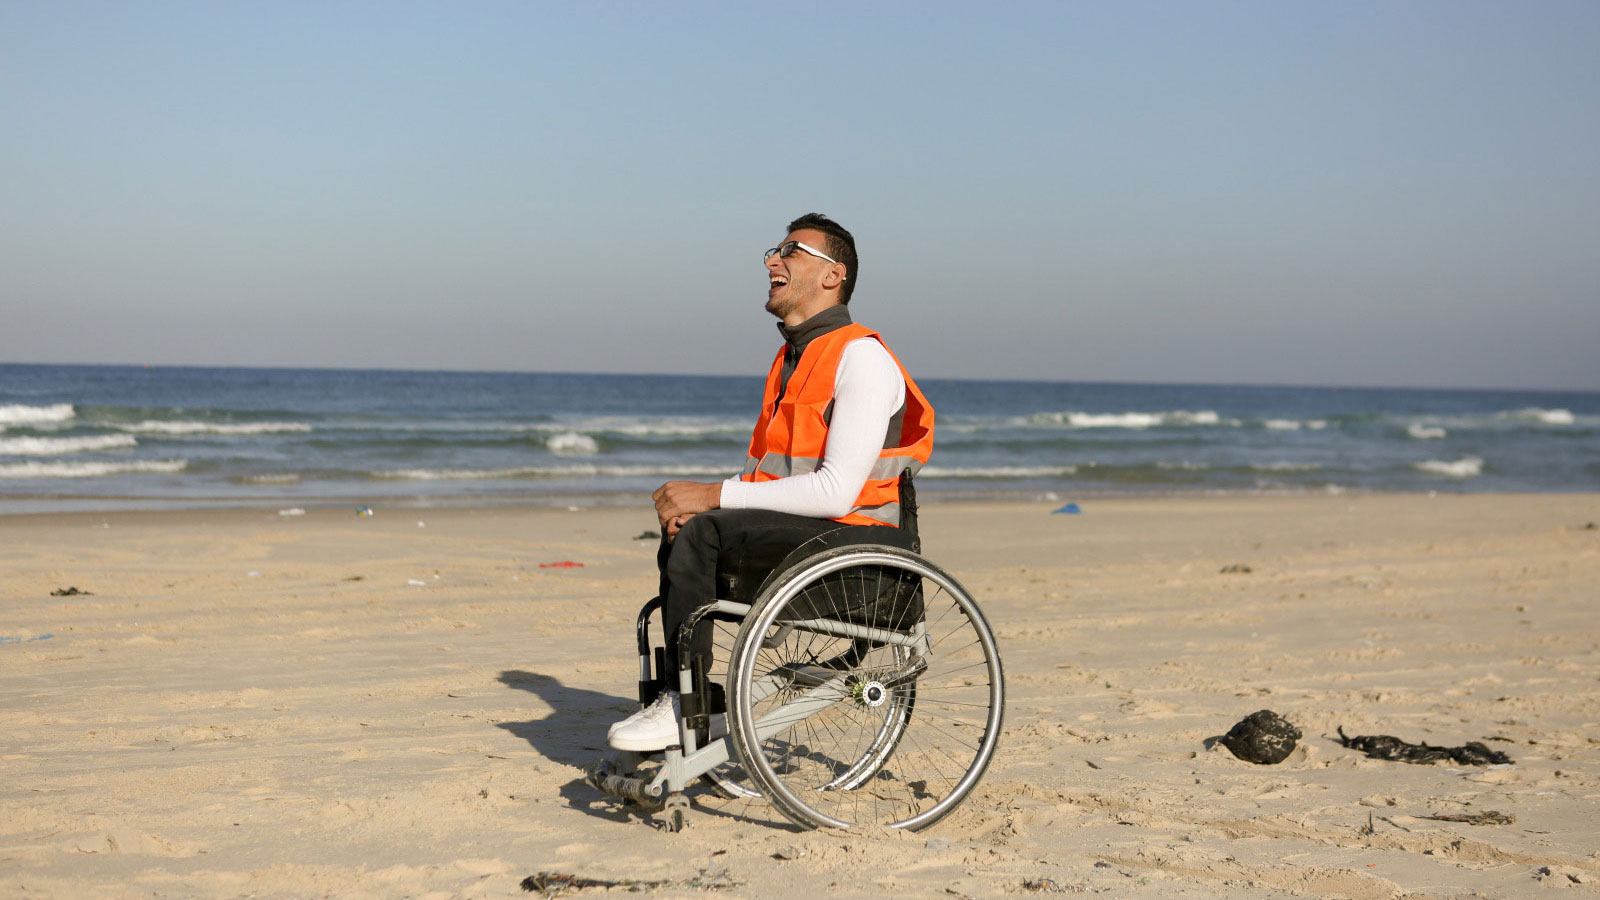 Ali -who-enjoys-the-new-inclusive-beach-in-Gaza -smiles-while-in-his-wheelchair-on-the-sand